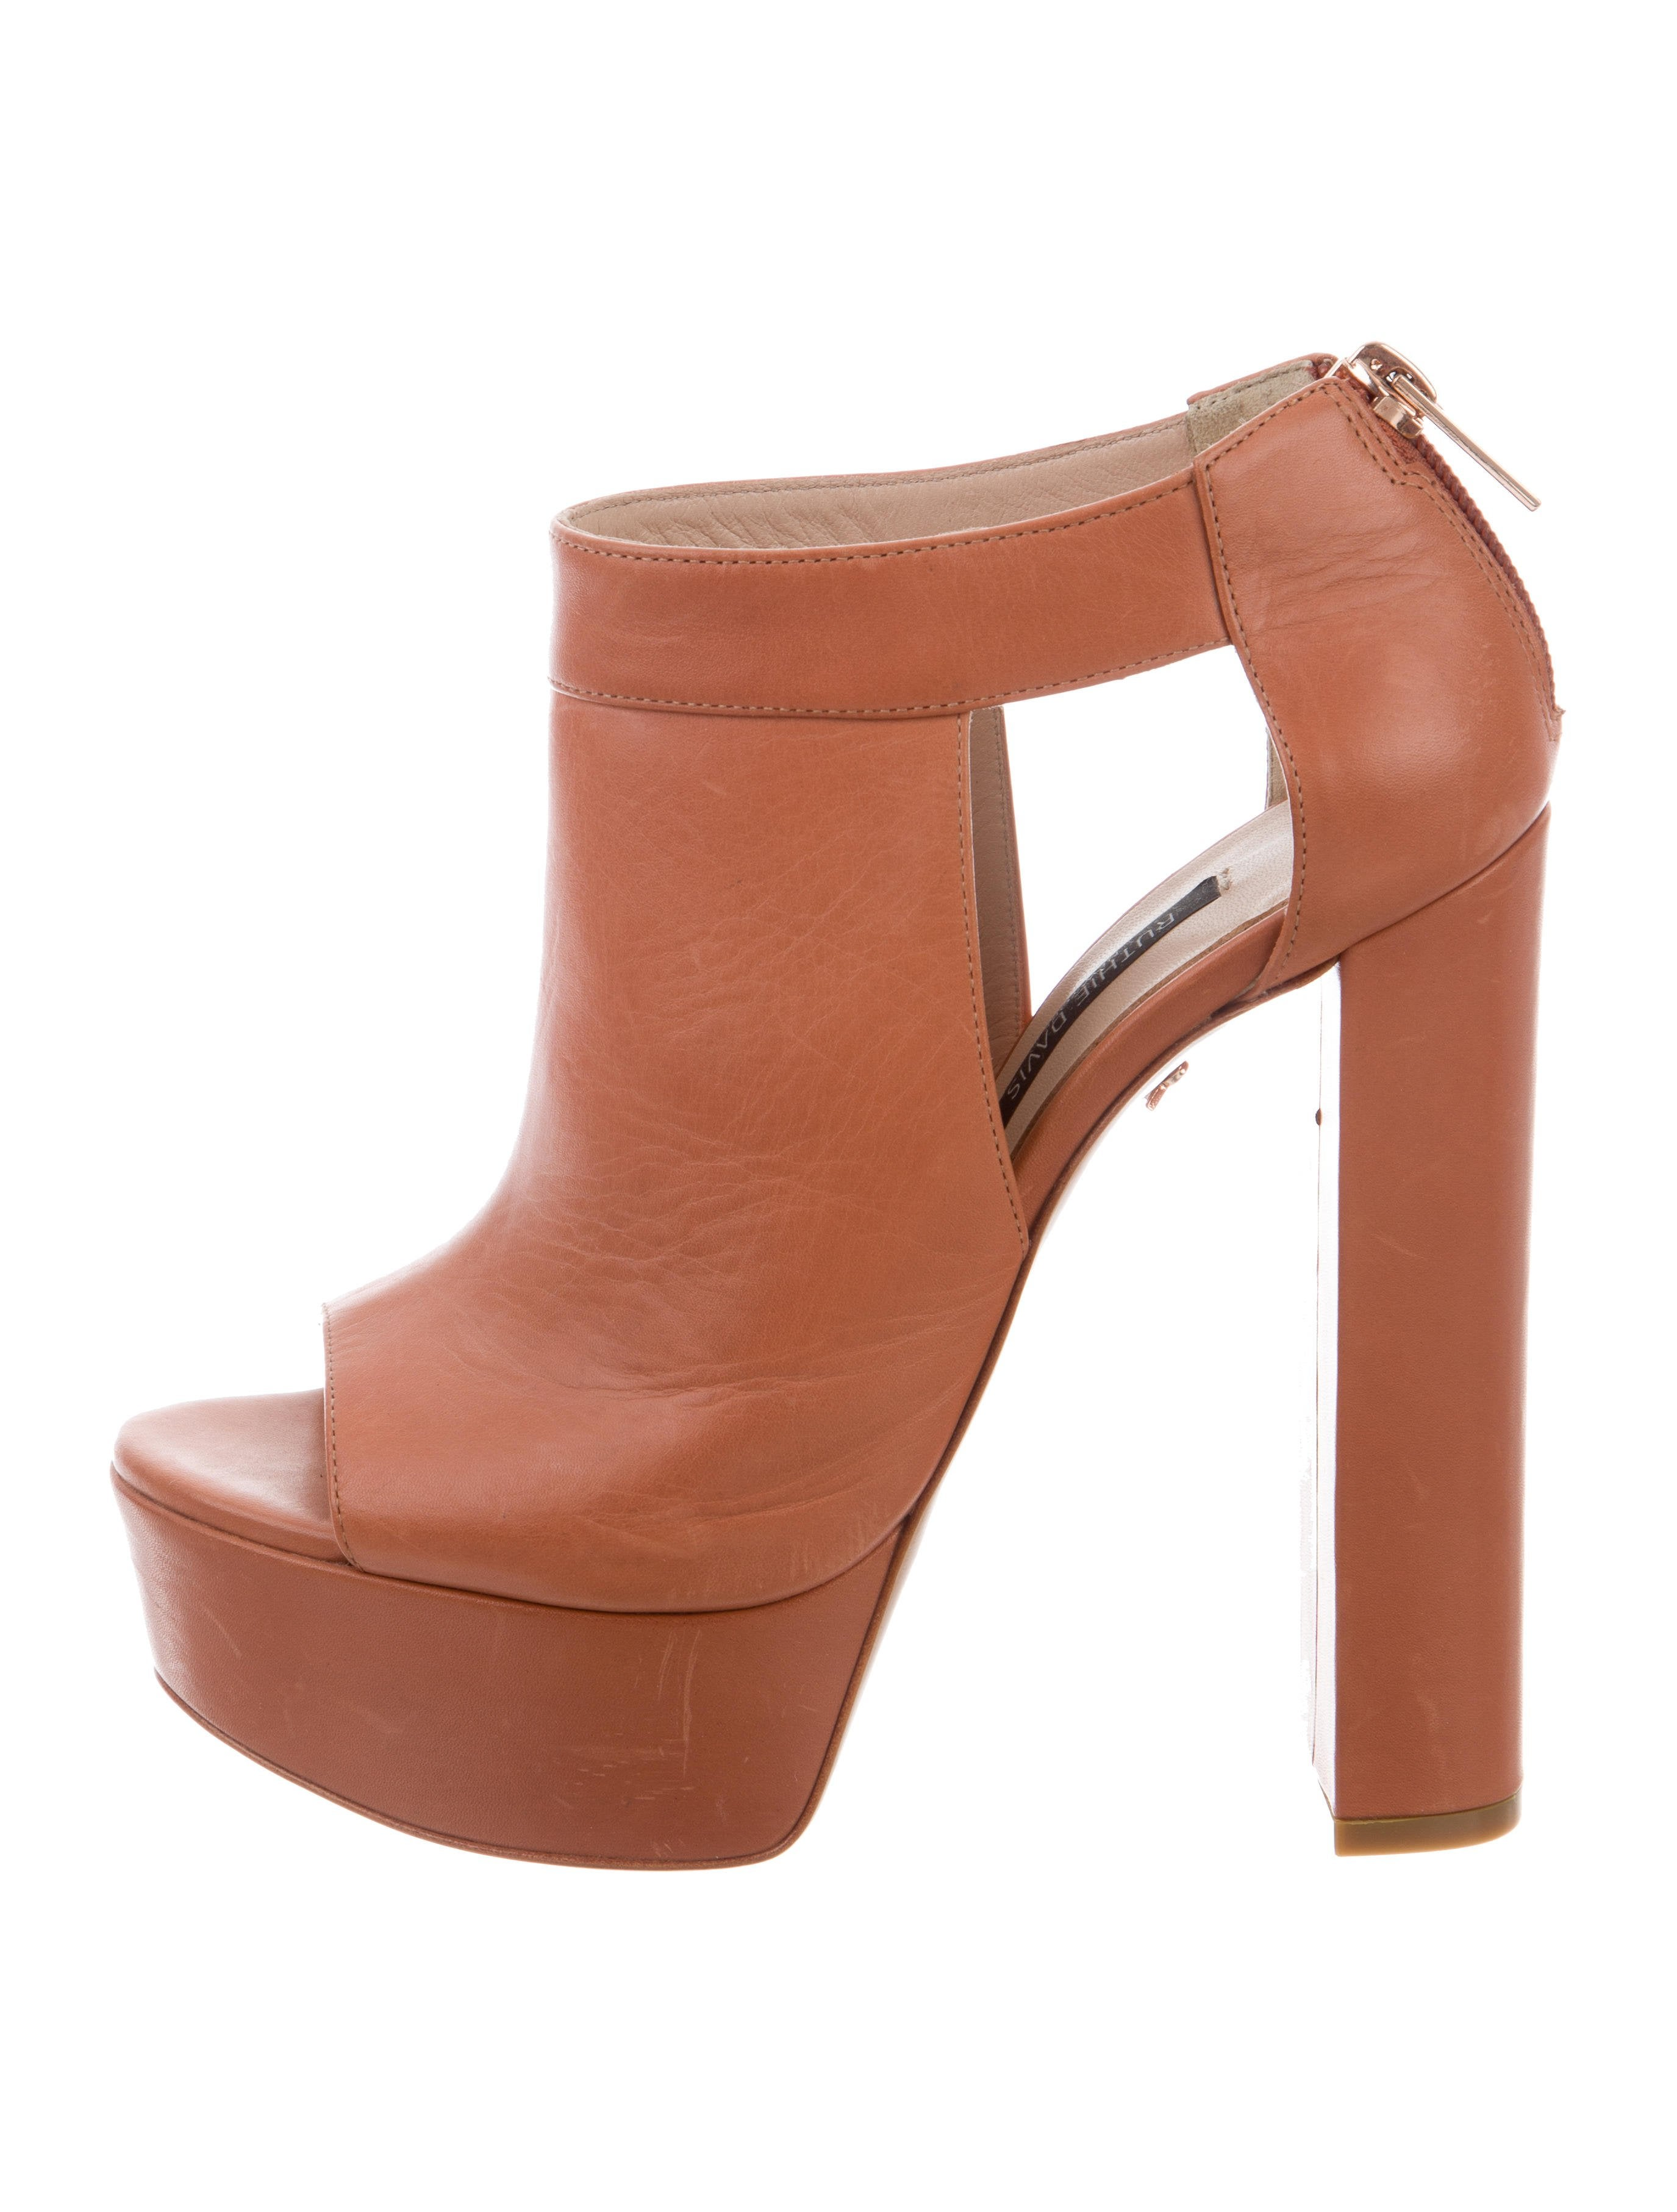 footaction classic online Ruthie Davis Campbell Platform Booties discount in China pictures online ULUvKJOjc